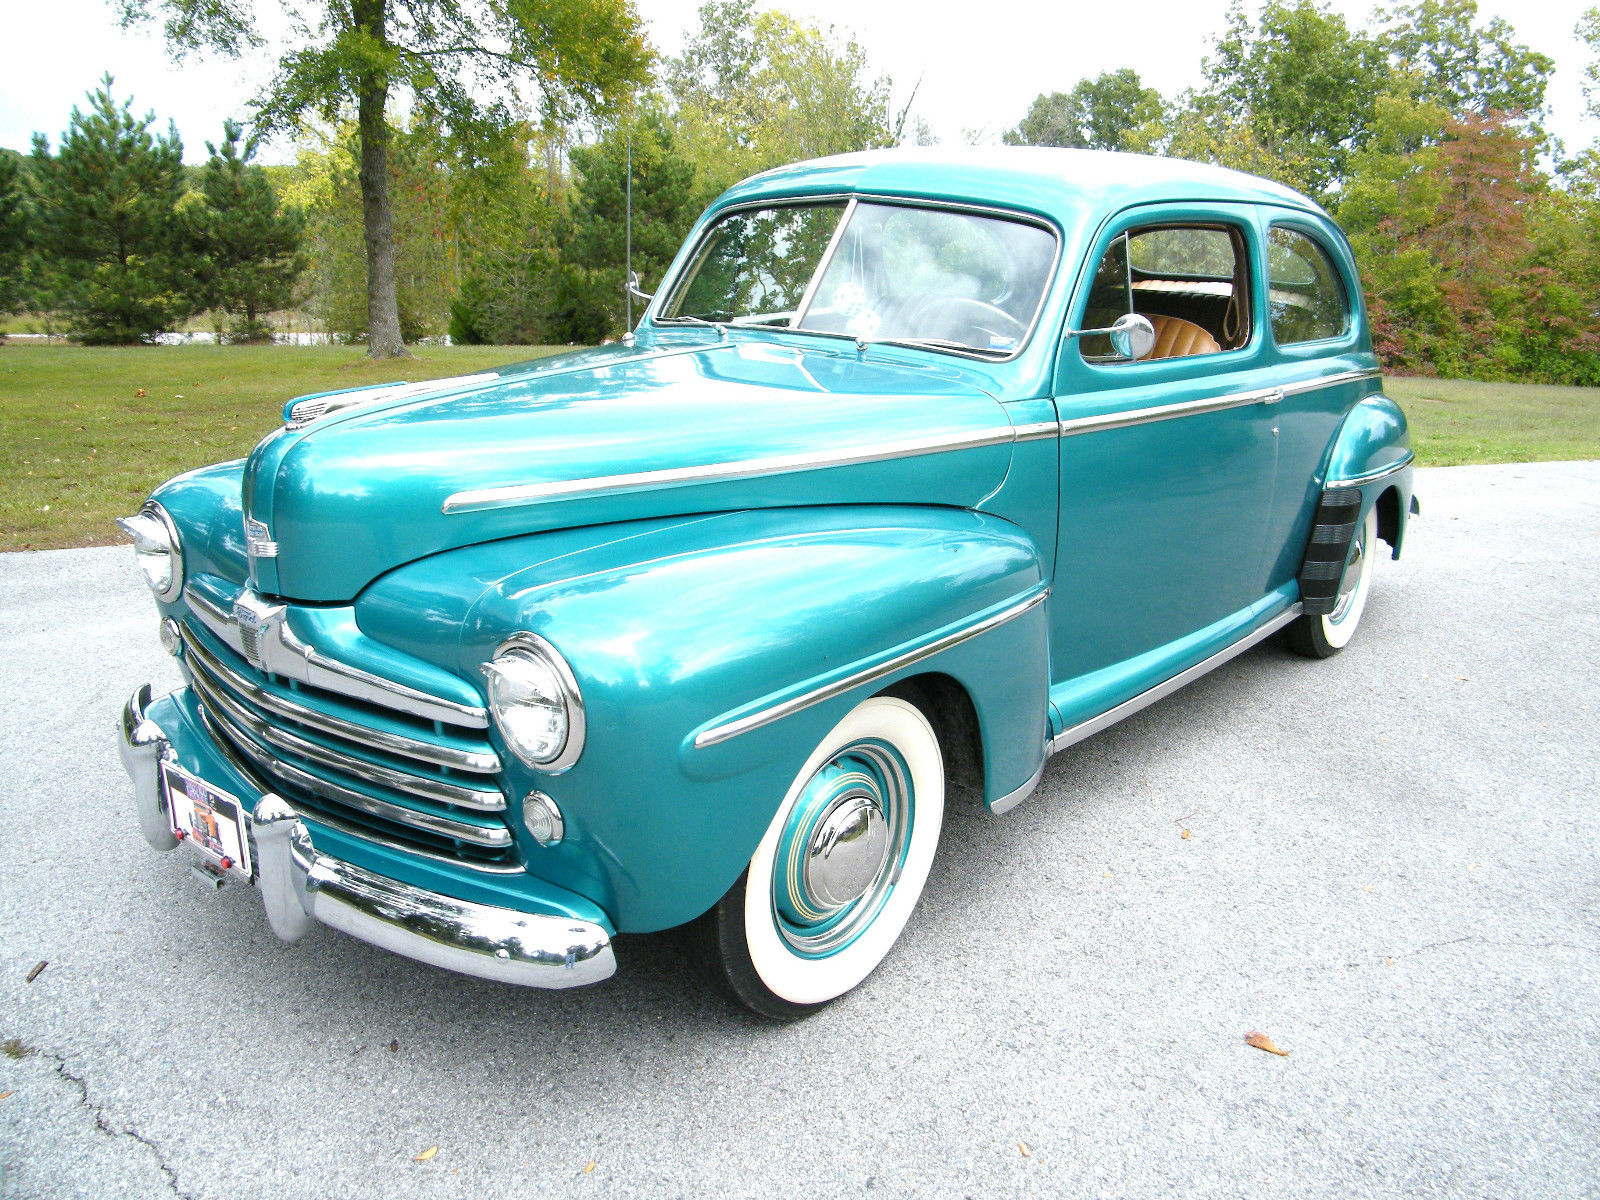 1948 Ford with Mercury Flathead V8 | eBay Motors Blog